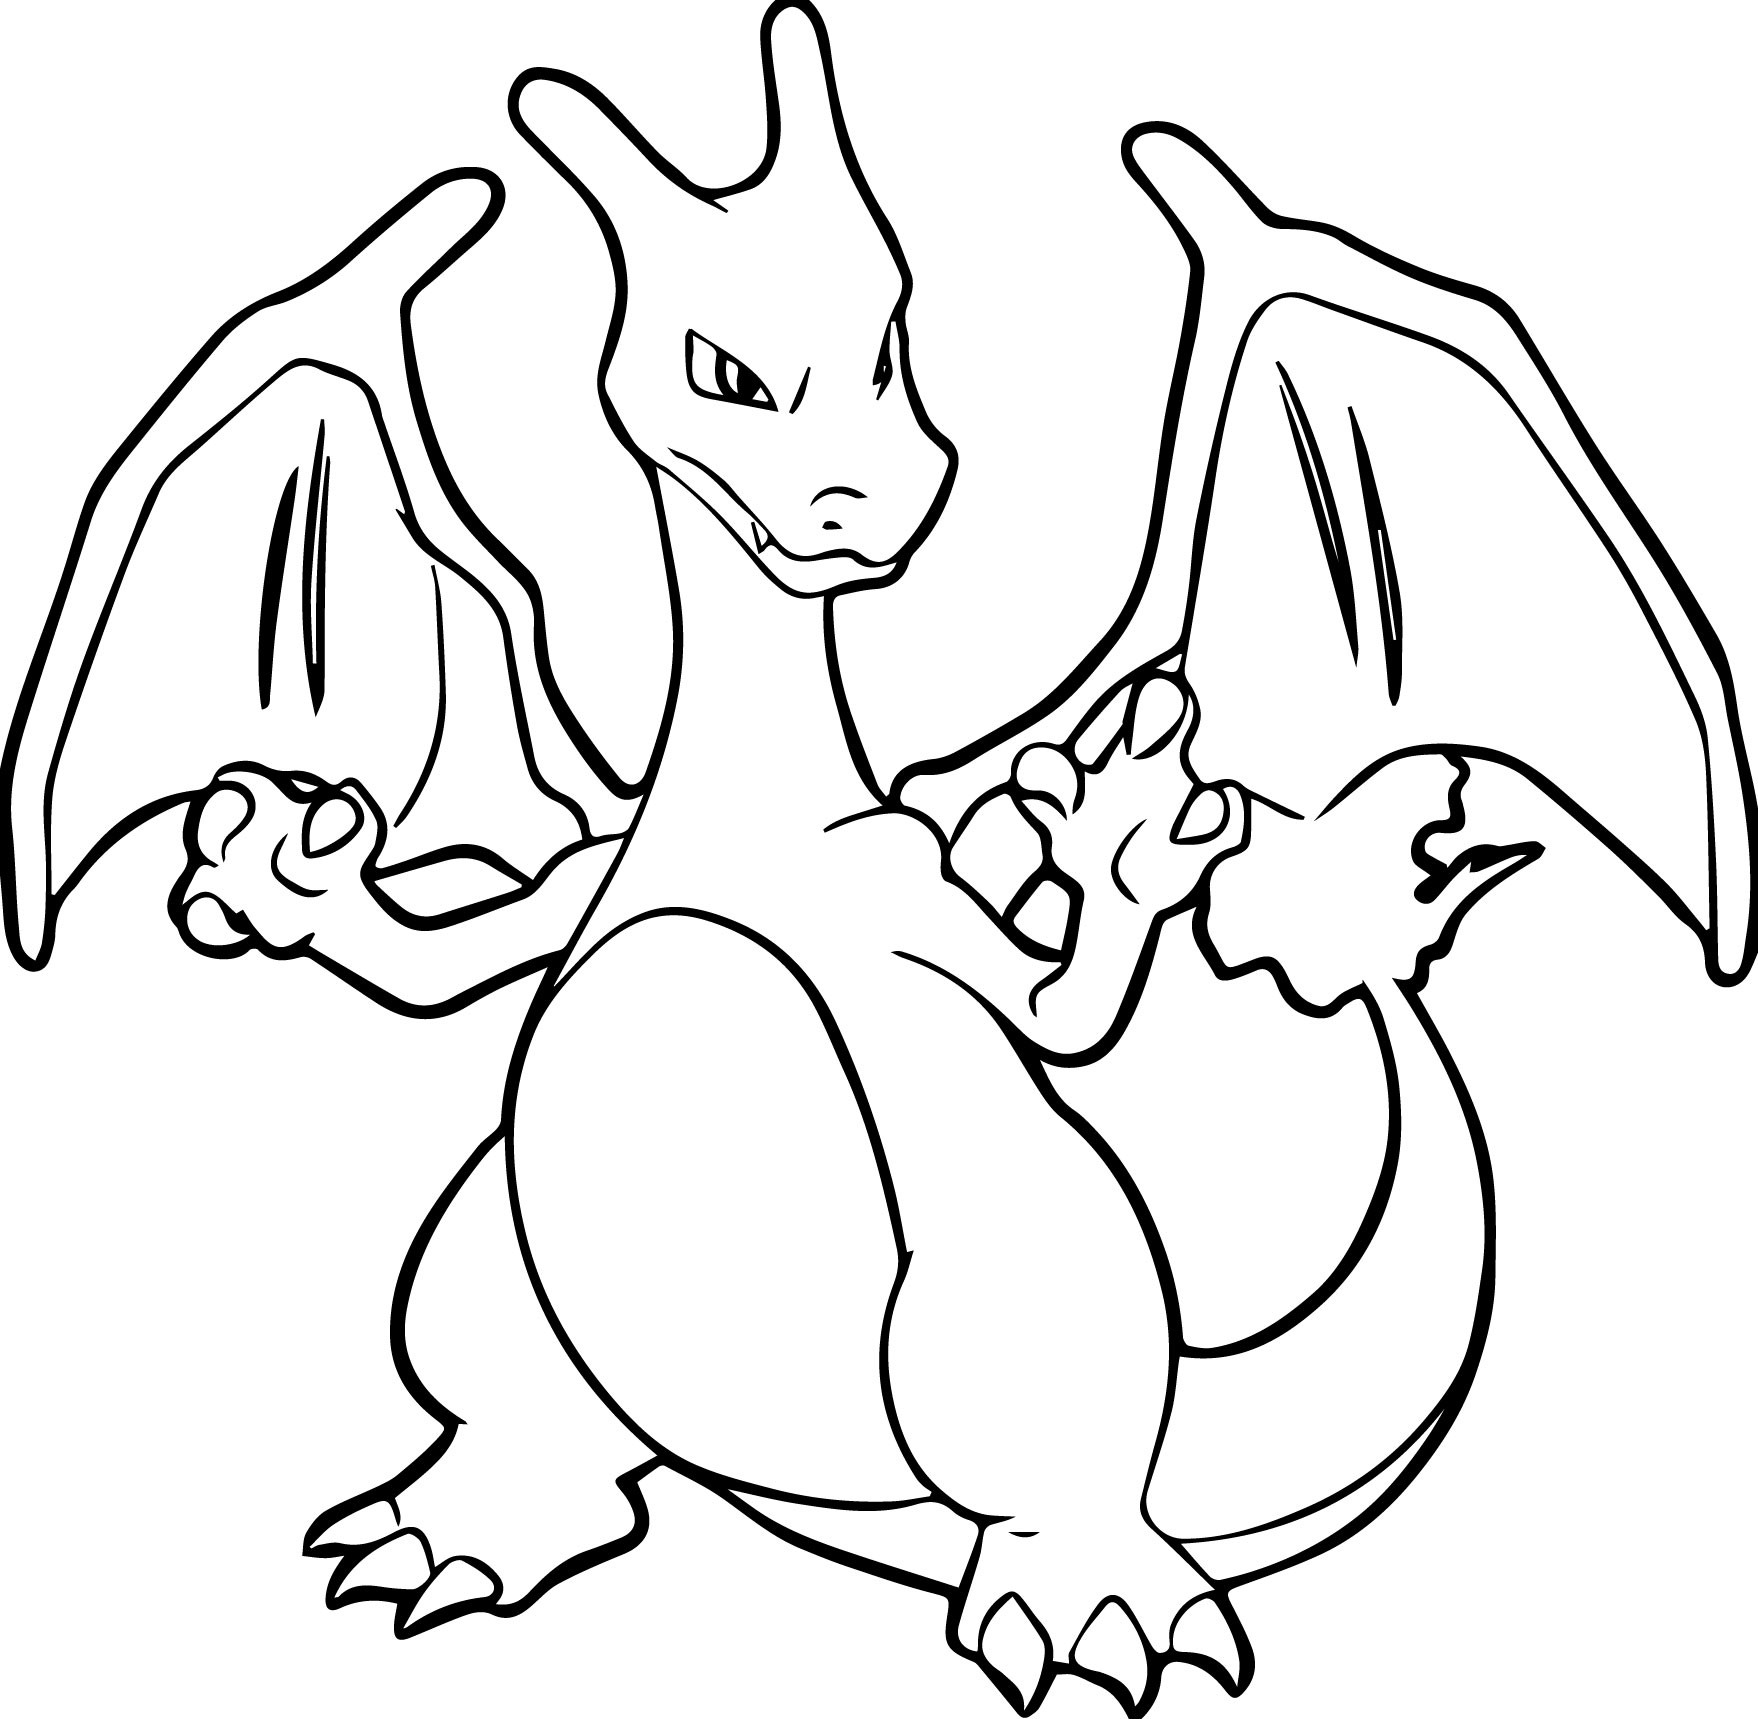 Pokemon Coloring Pages Charizard  Printable 11n - Save it to your computer